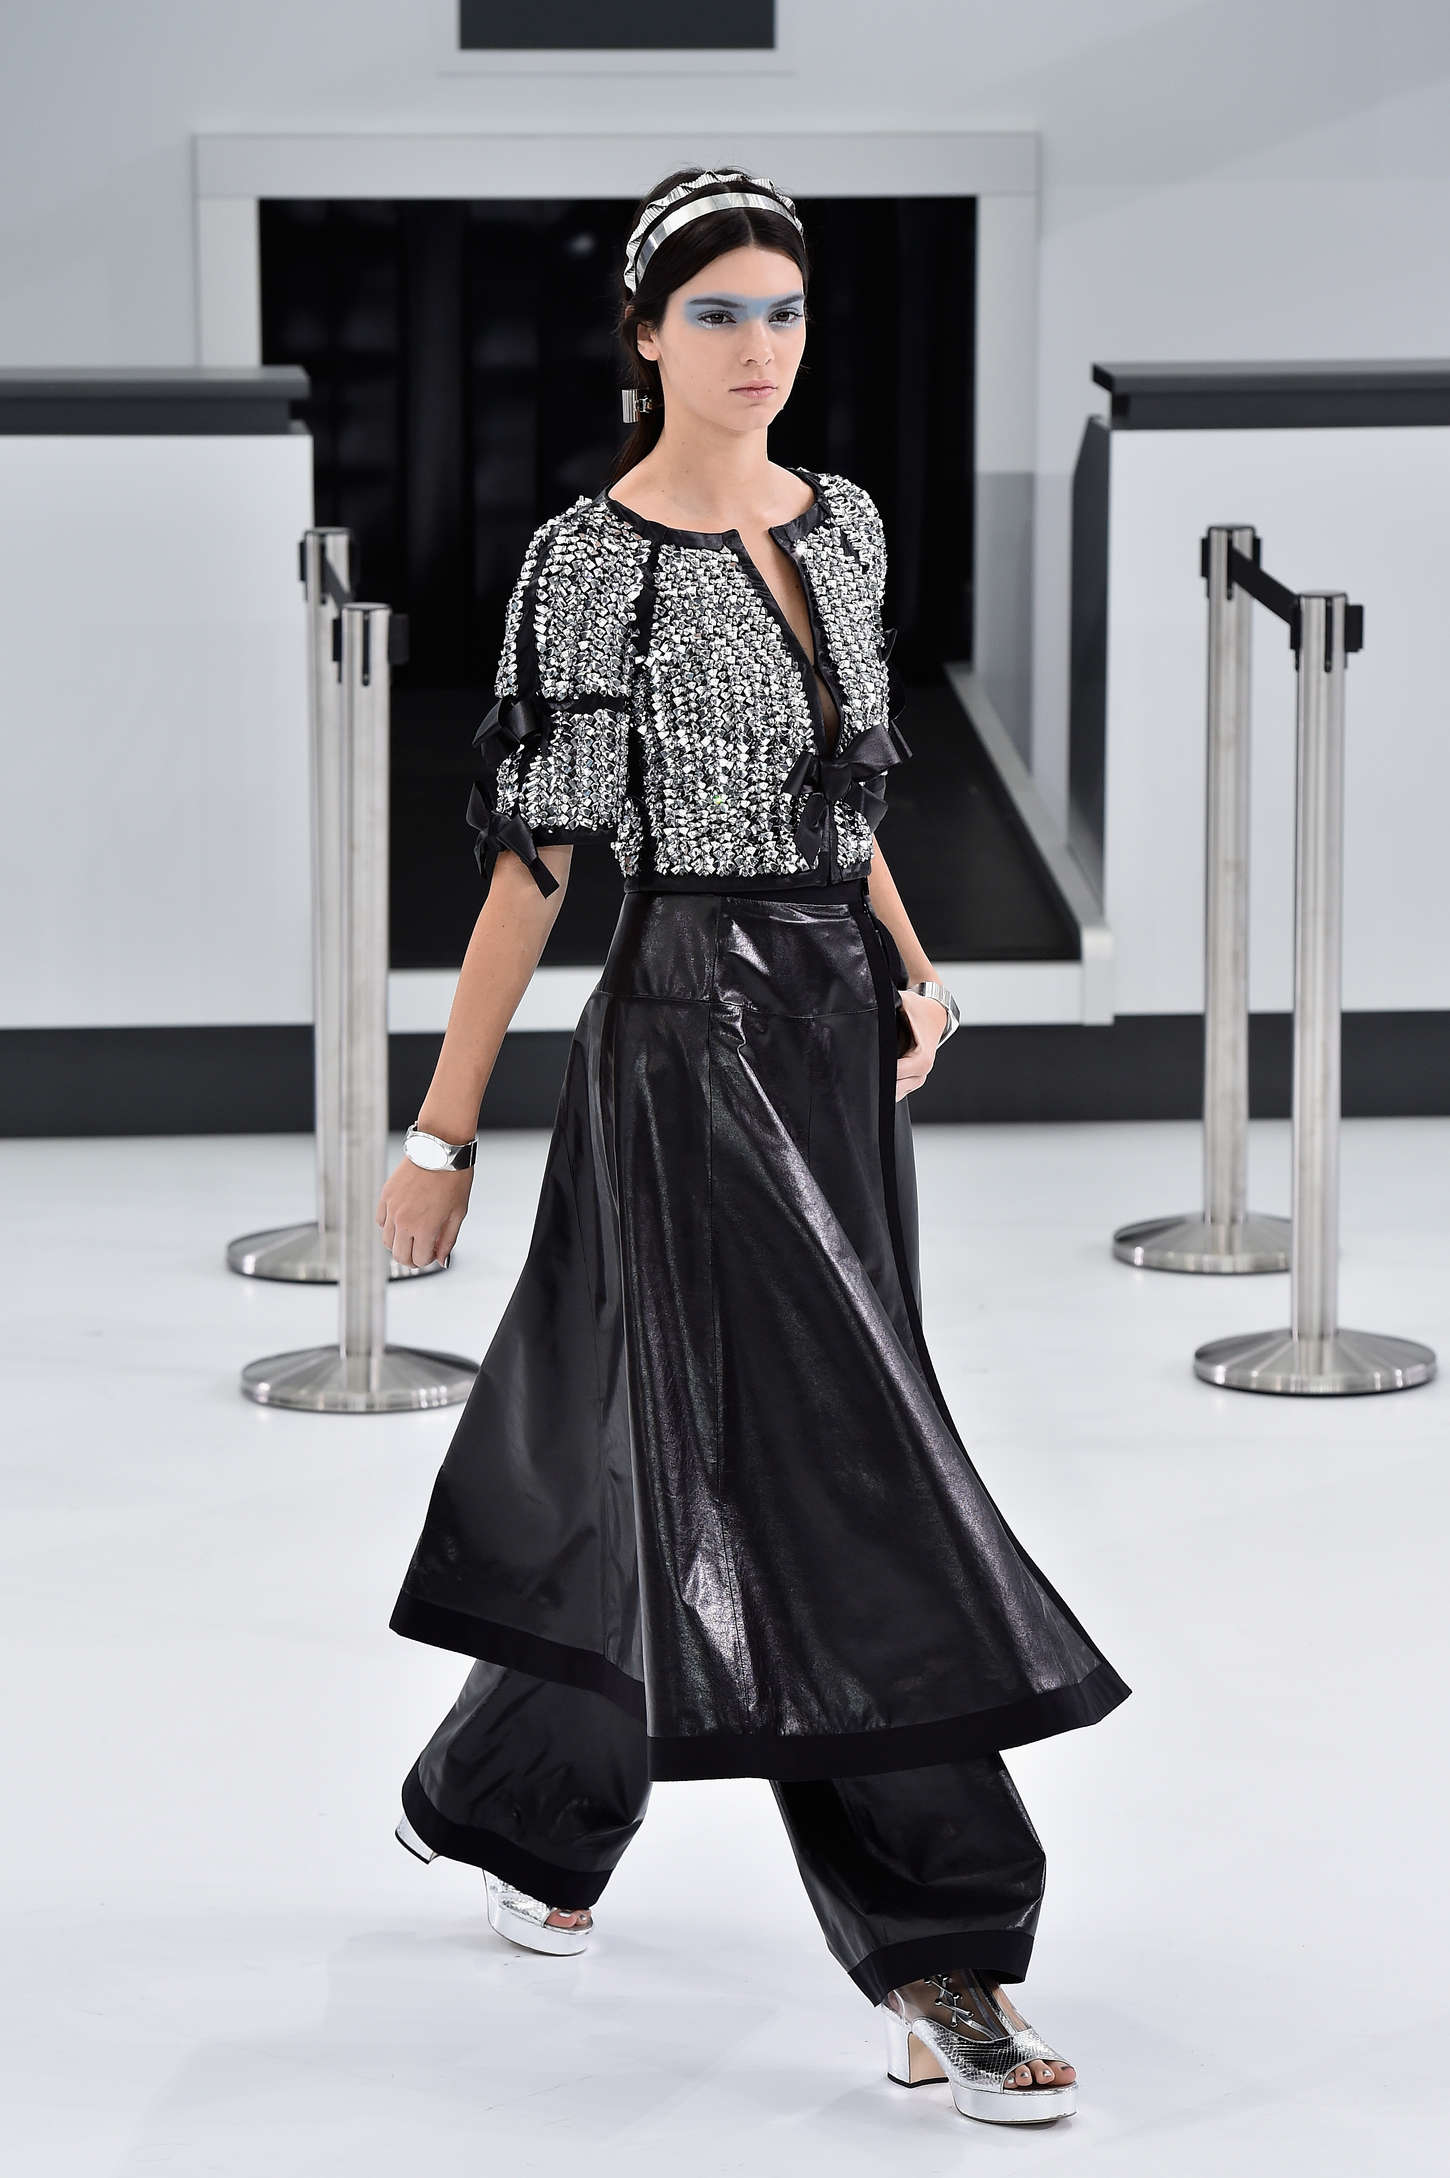 Kendall Jenner - Chanel Show at Paris Fashion Week Womenswear S/S 2016 in Paris